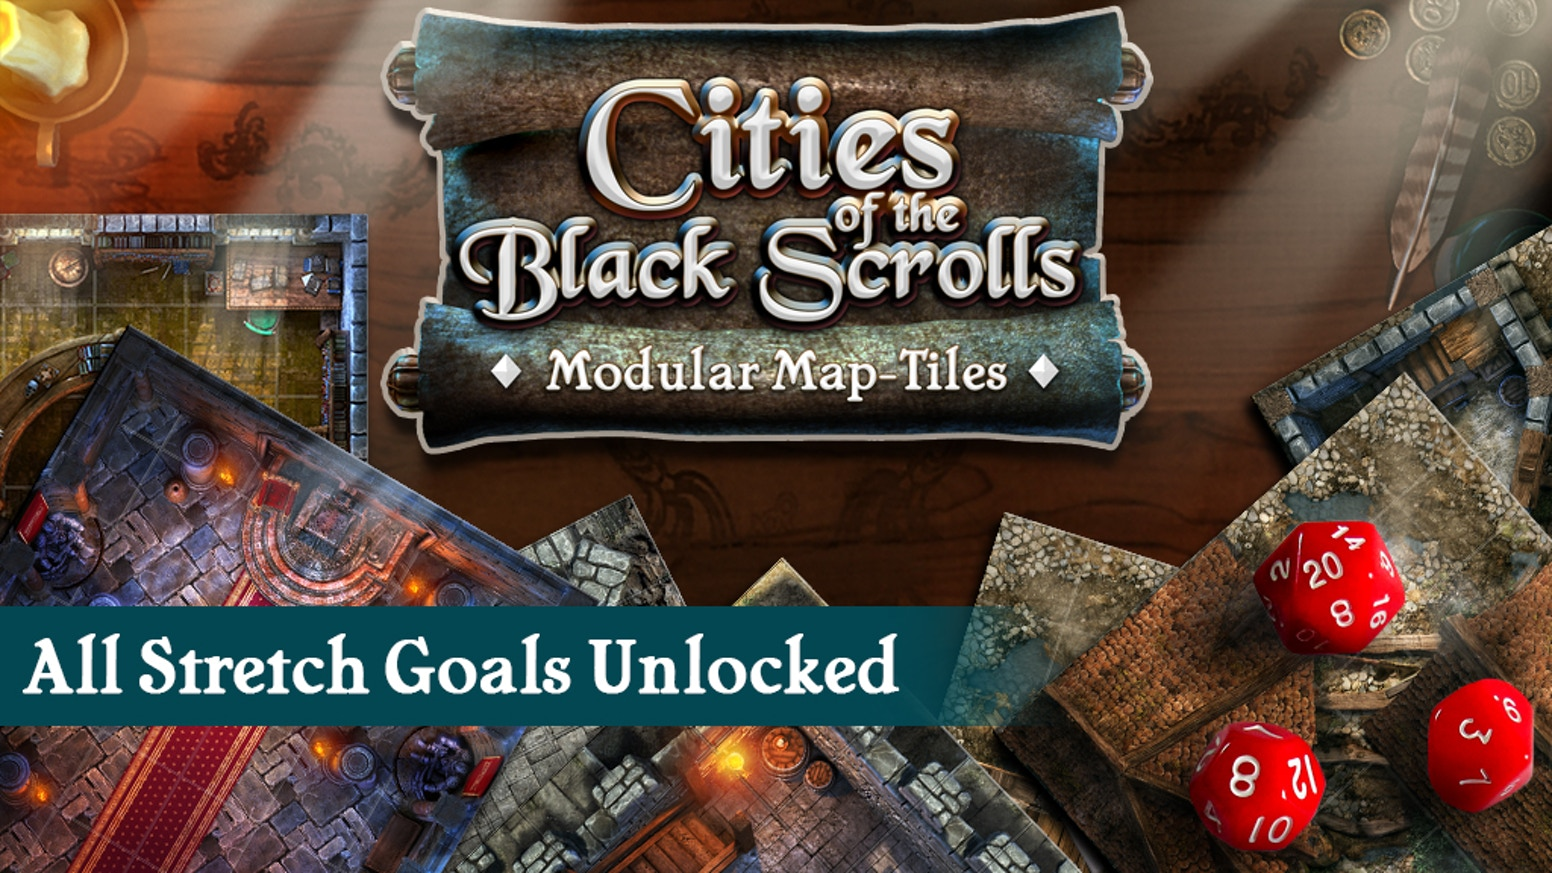 Cities of the Black Scrolls - Modular Map-Tile Sets by Black Scrolls